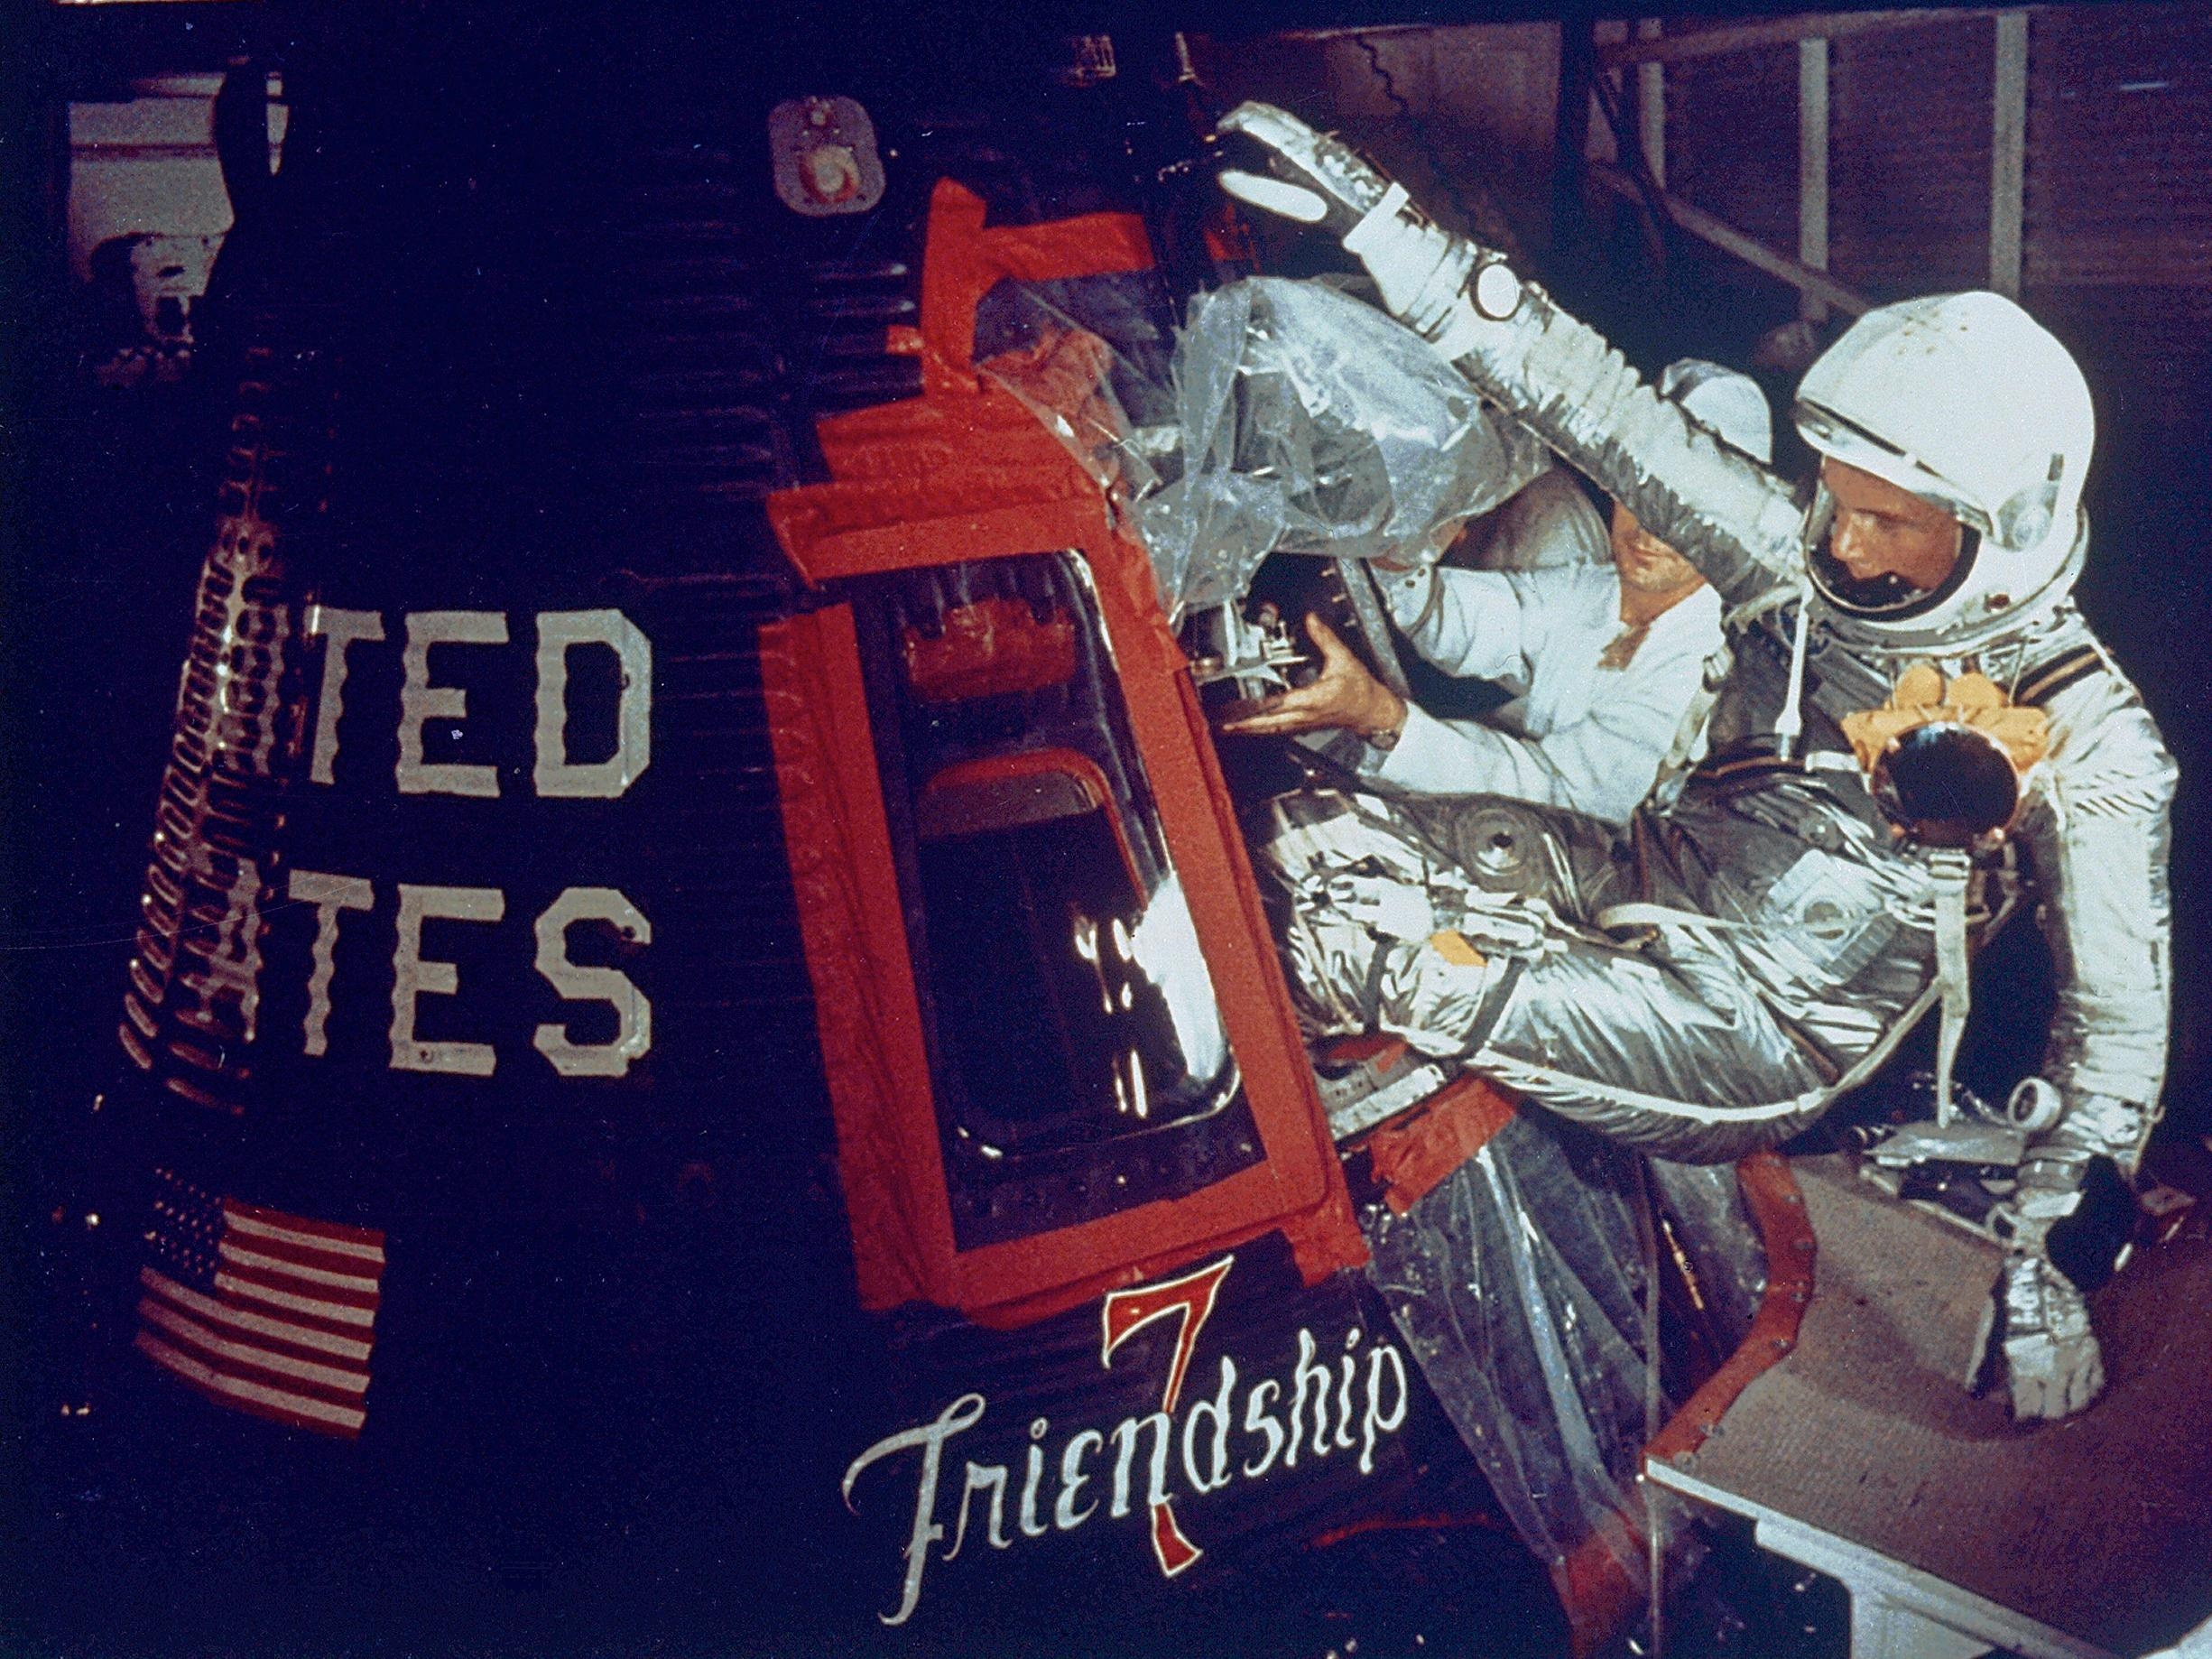 friendship 7 astronauts -#main